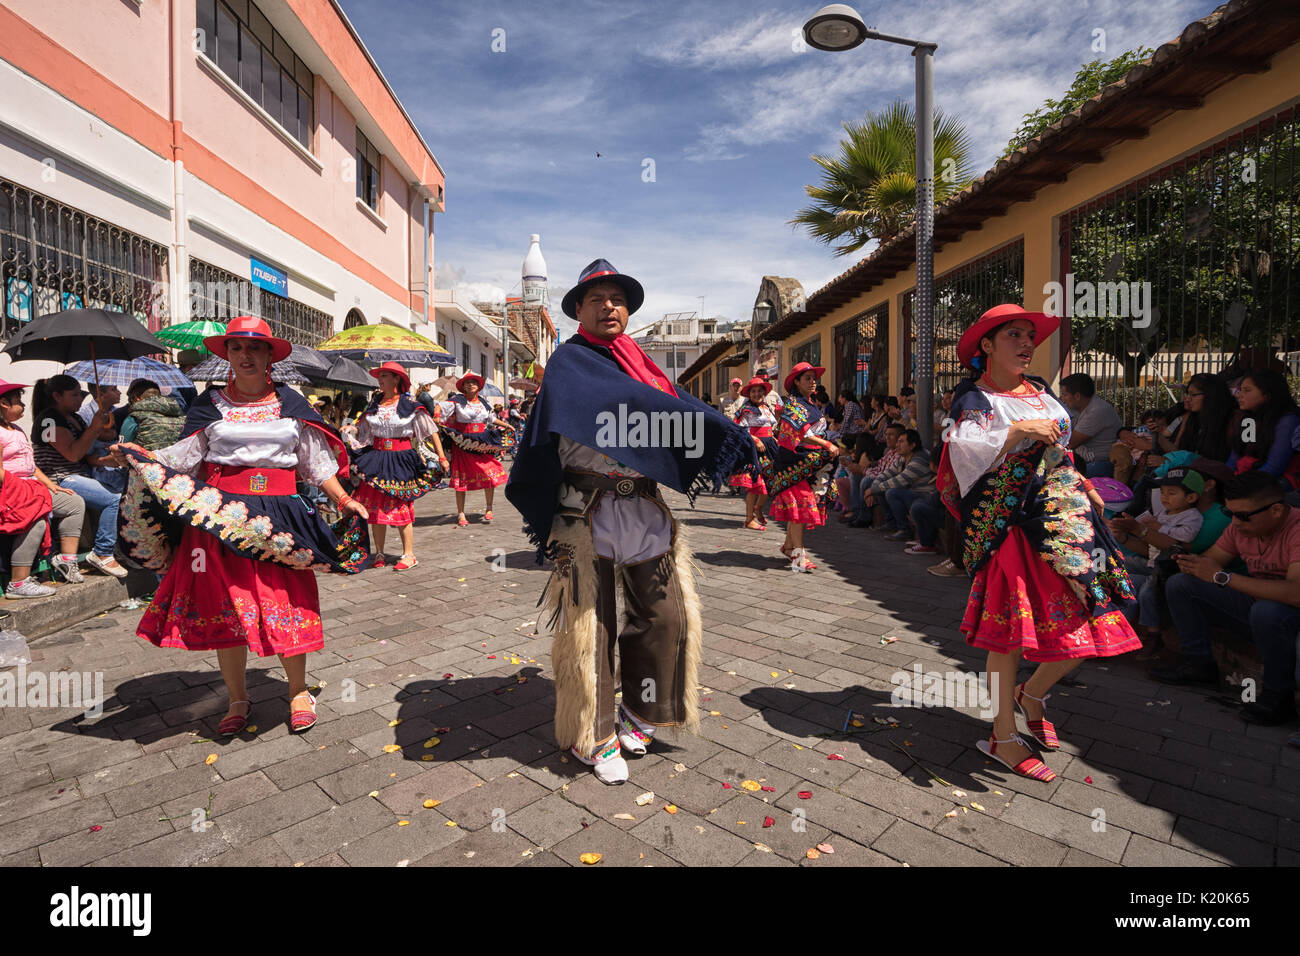 June 17, 2017 Pujili, Ecuador: indigenous kichwa people in traditional clothes dancing at the Corpus Christi parade - Stock Image